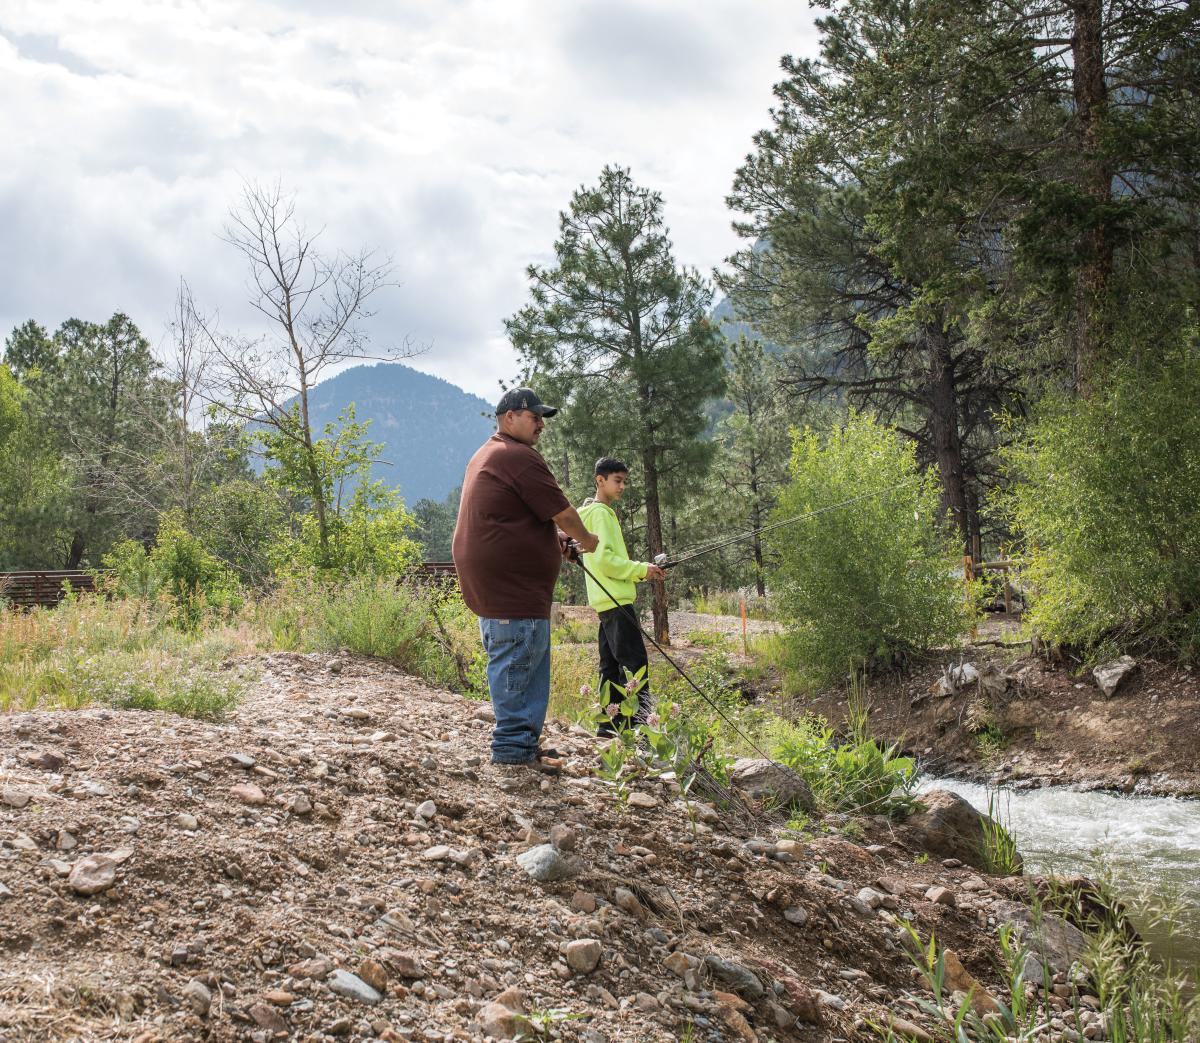 Fishermen enjoy the outdoors in Questa